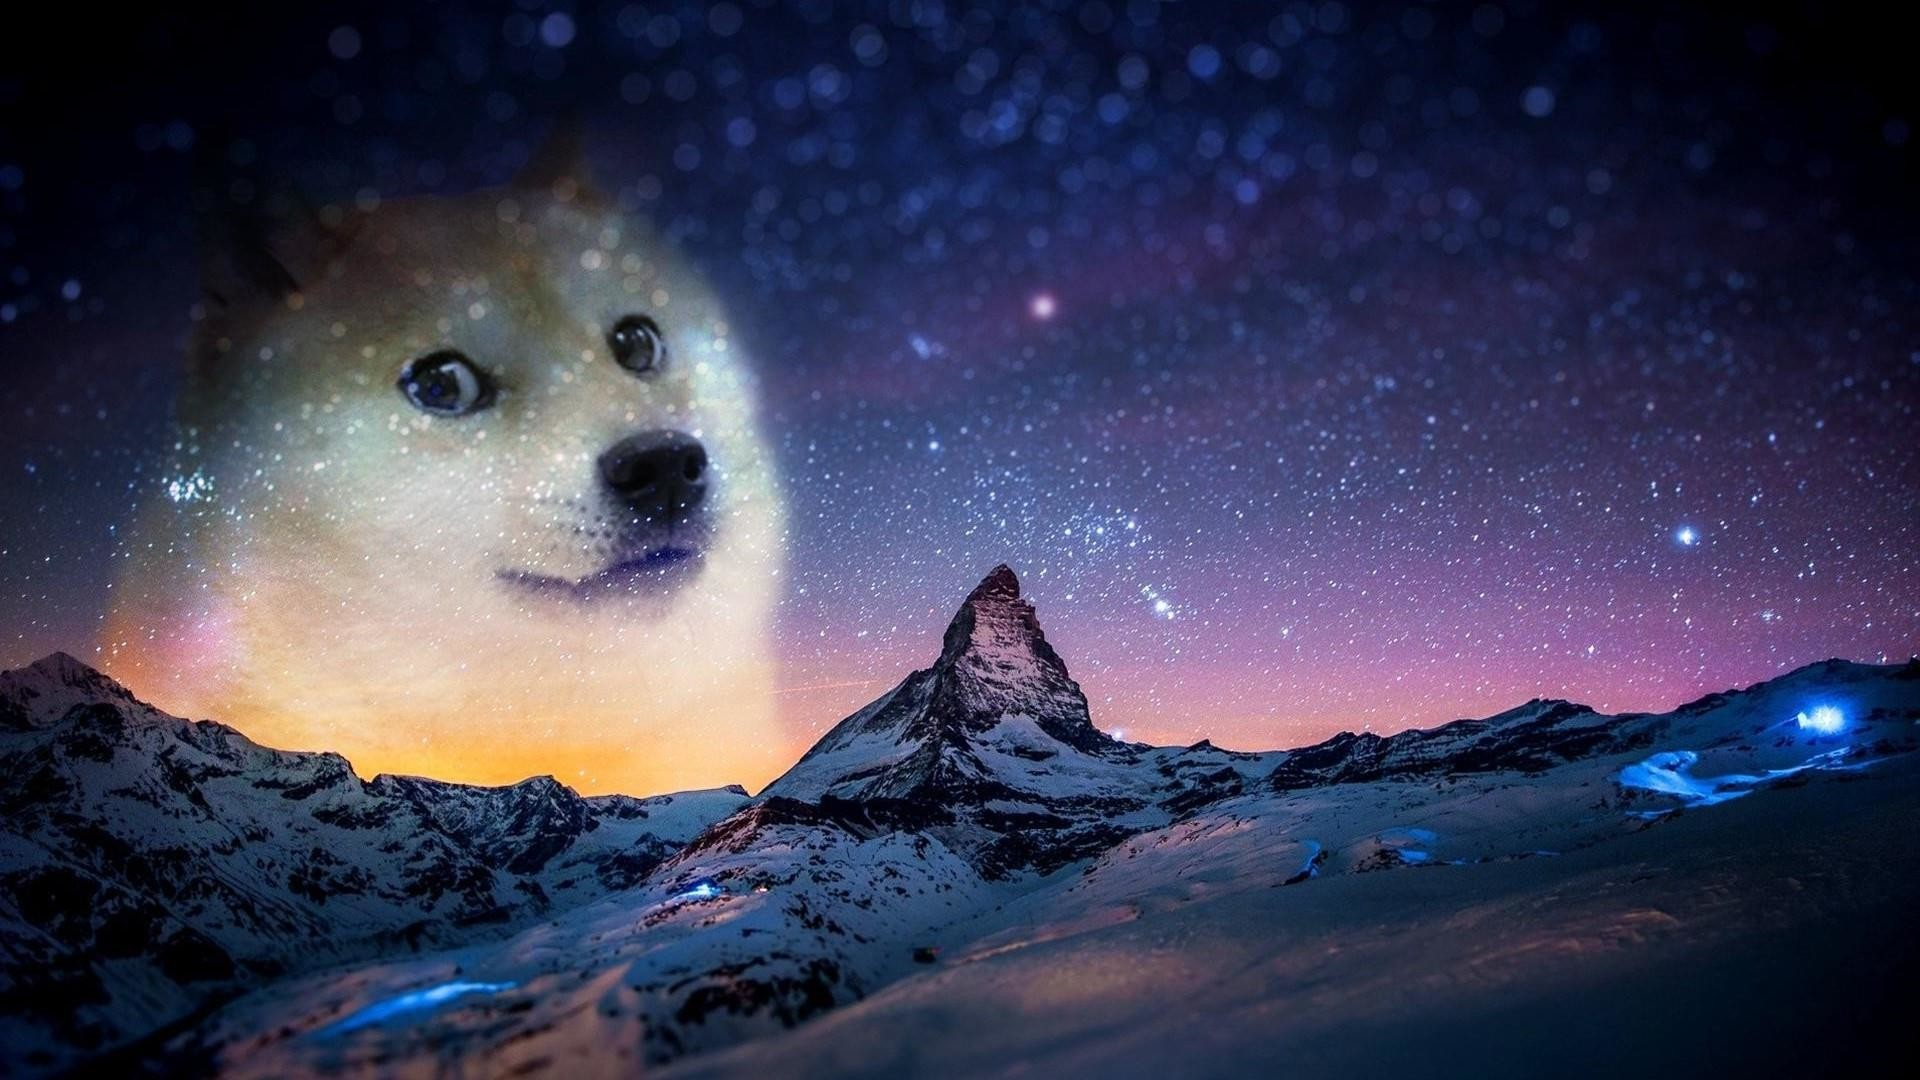 Res: 1920x1080, Doge In Da Sky Wallpaper | Wallpaper Studio 10 | Tens of thousands HD and  UltraHD wallpapers for Android, Windows and Xbox